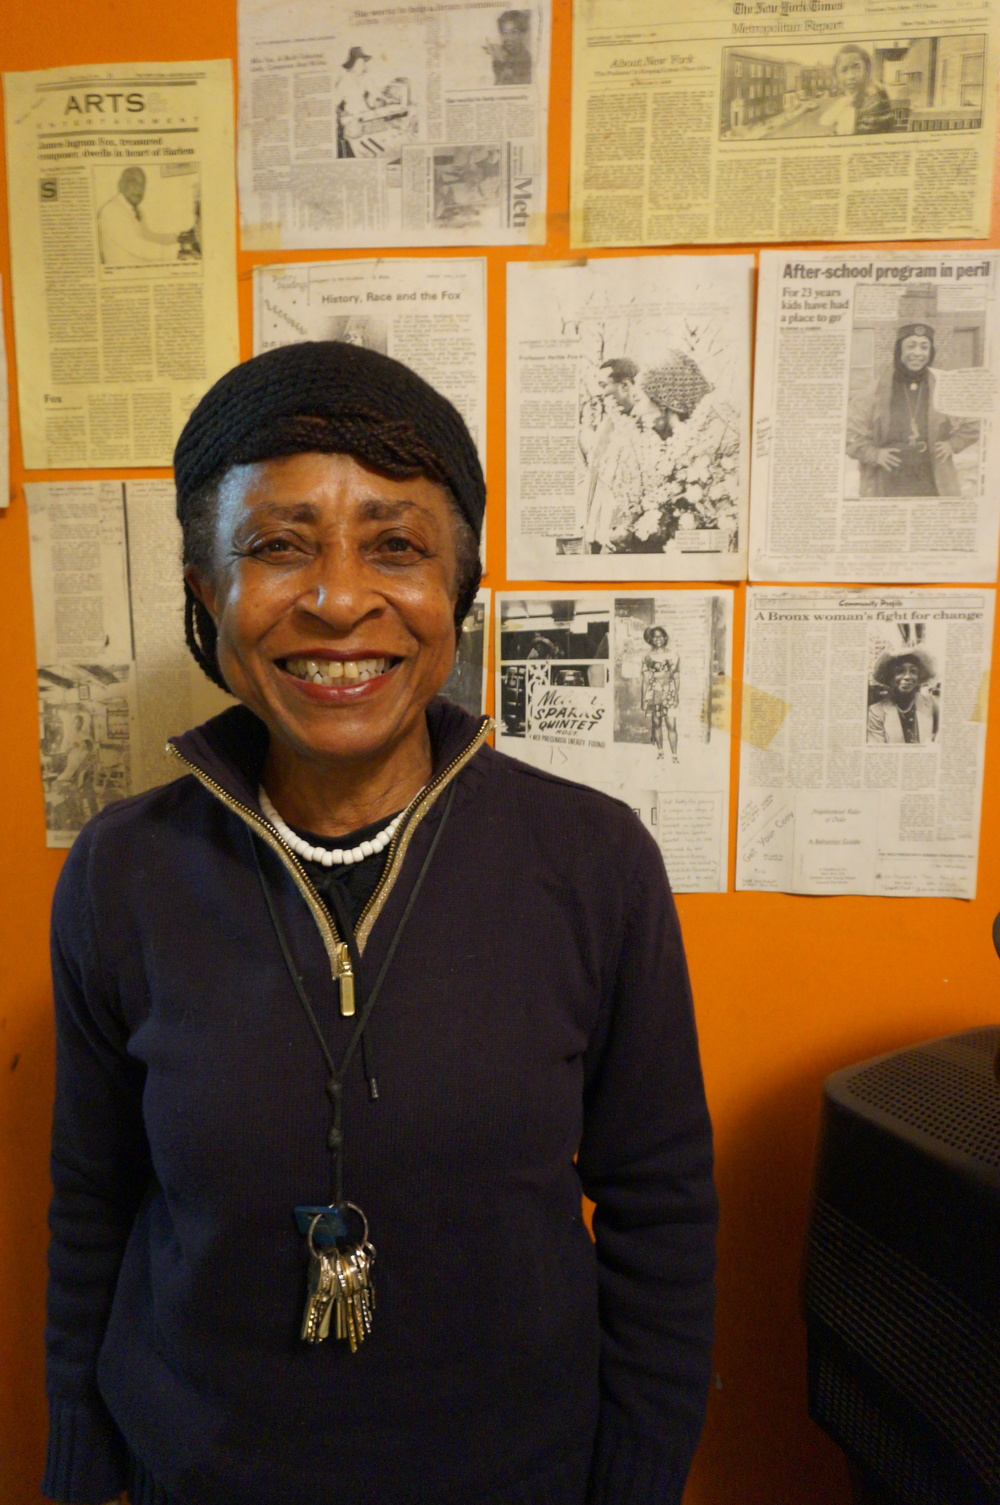 Hetty Fox, PhD,  has lived on the same block in the Bronx for over 70 years.  She has run a community play street on her block for over 37 years.  She is an activist, a conga player, and a visual artist.